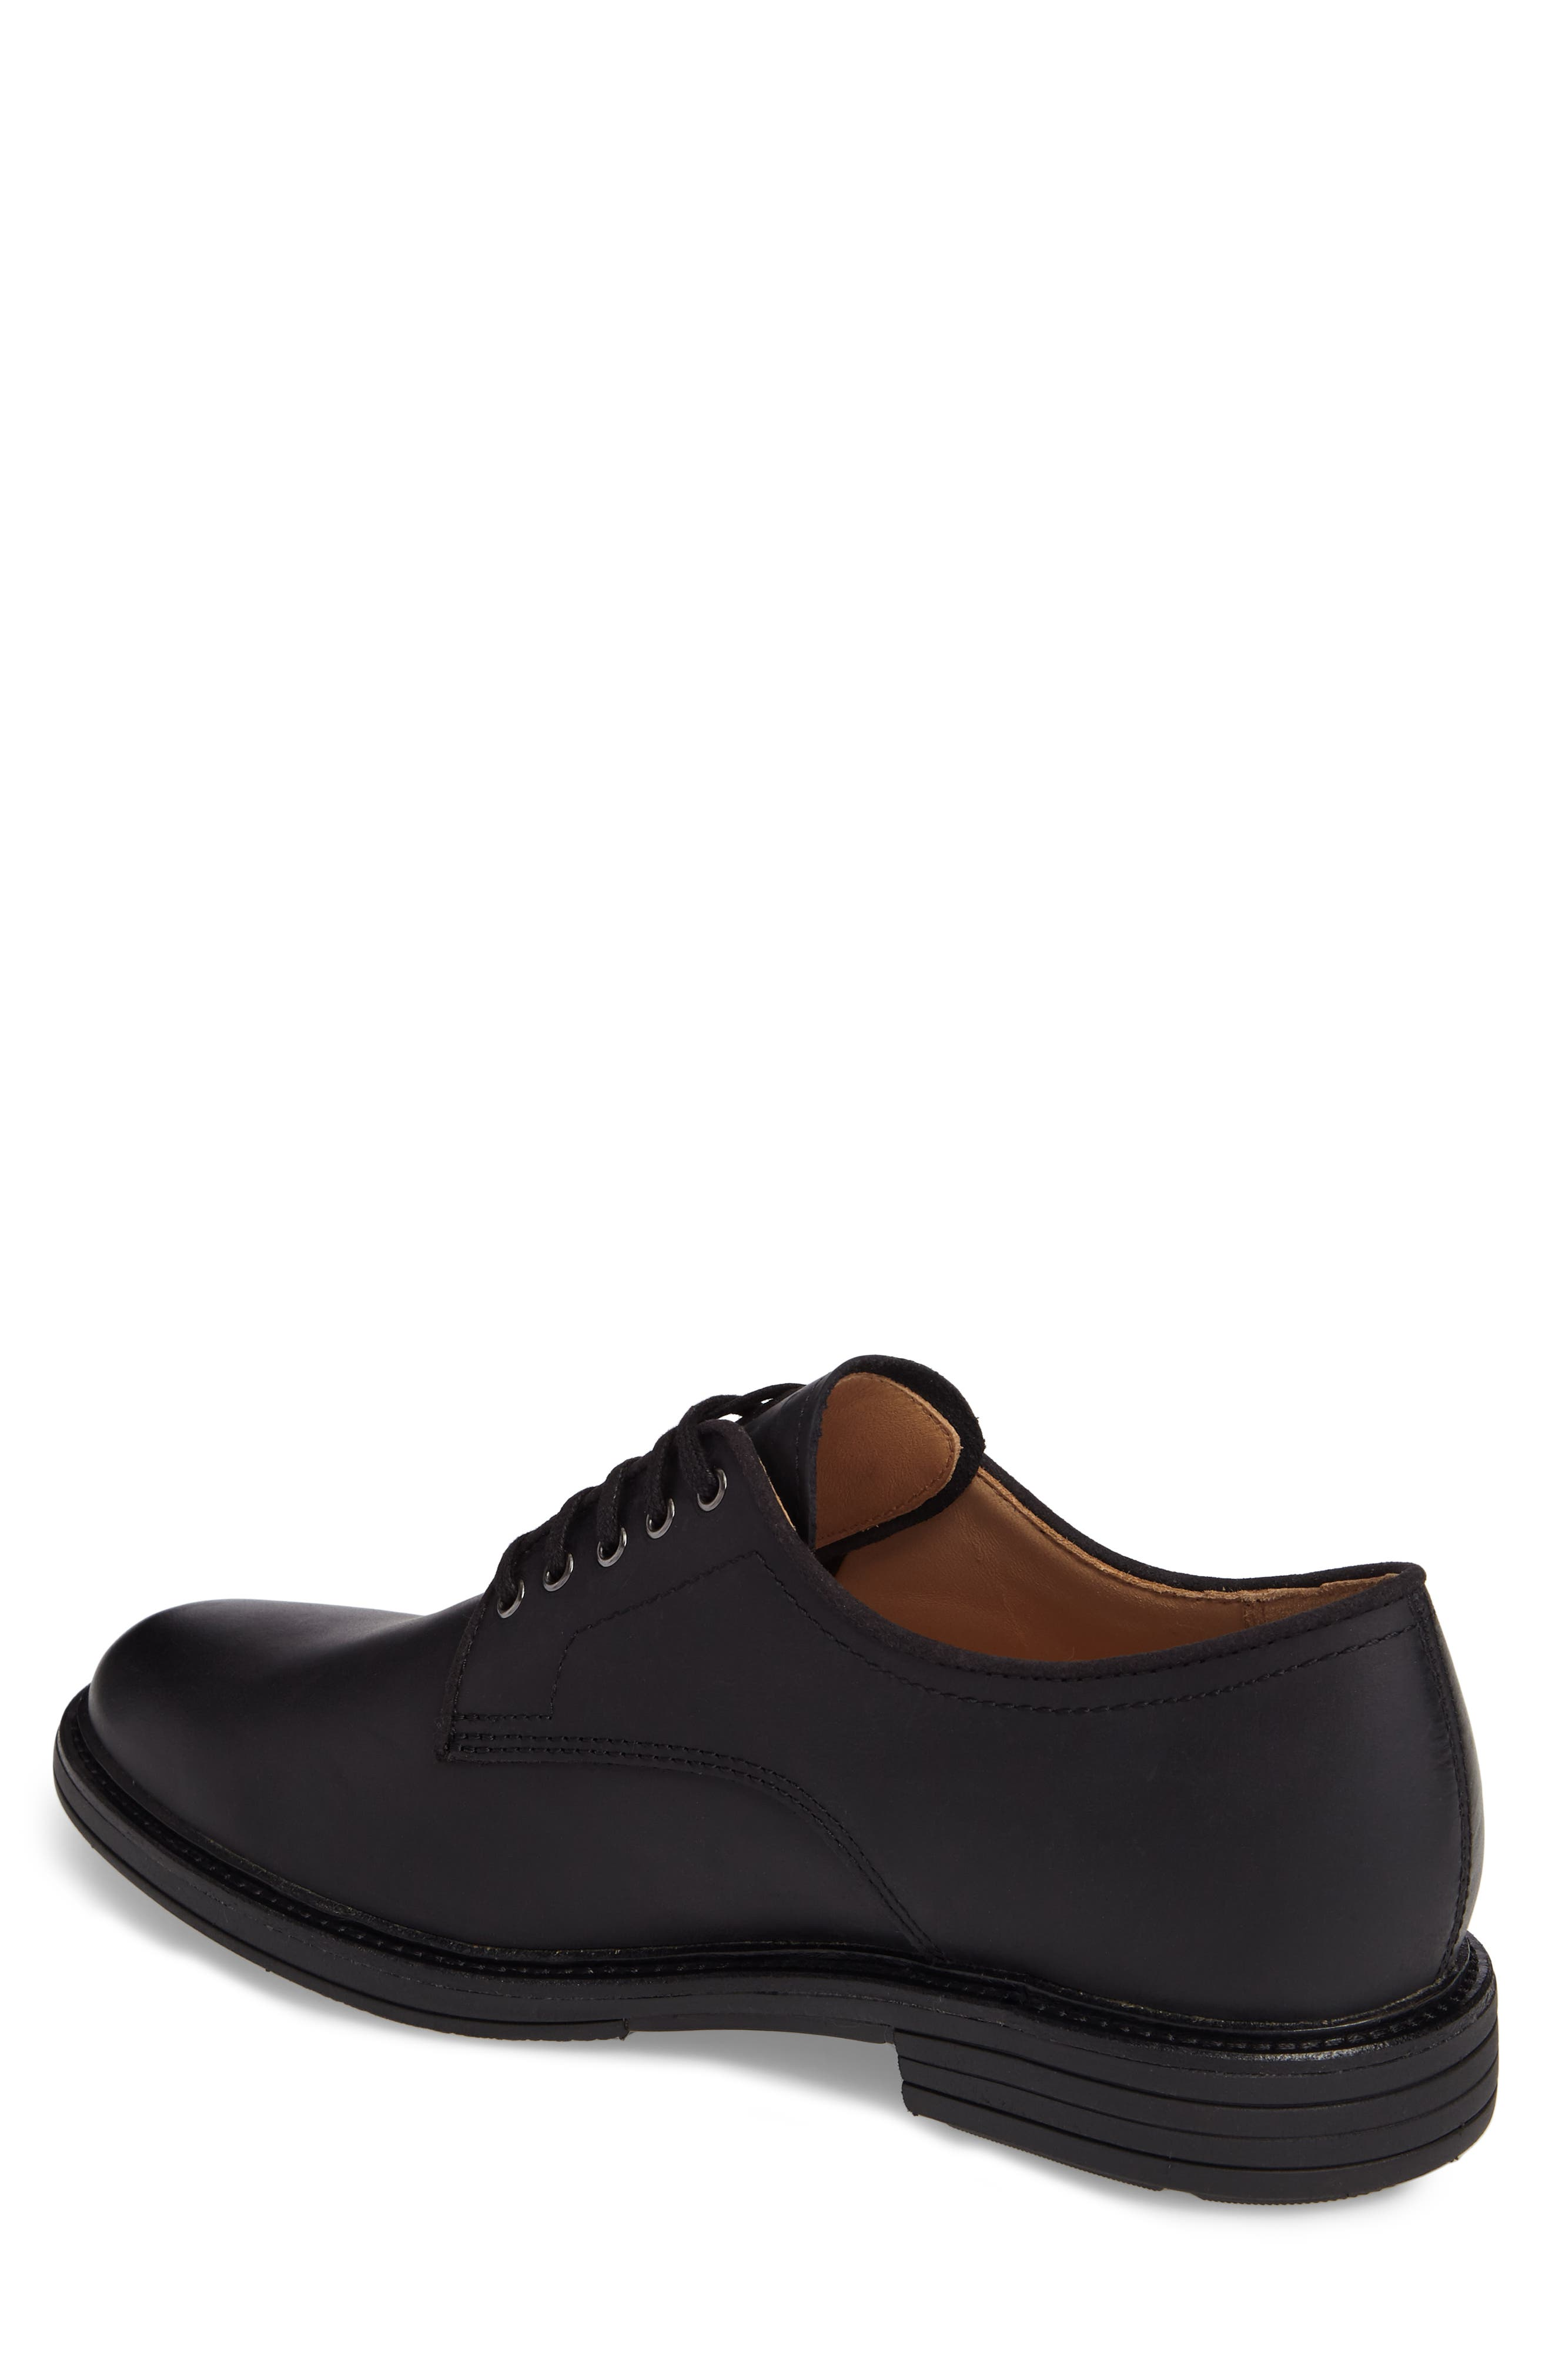 Jovin Buck Shoe,                             Alternate thumbnail 2, color,                             Black